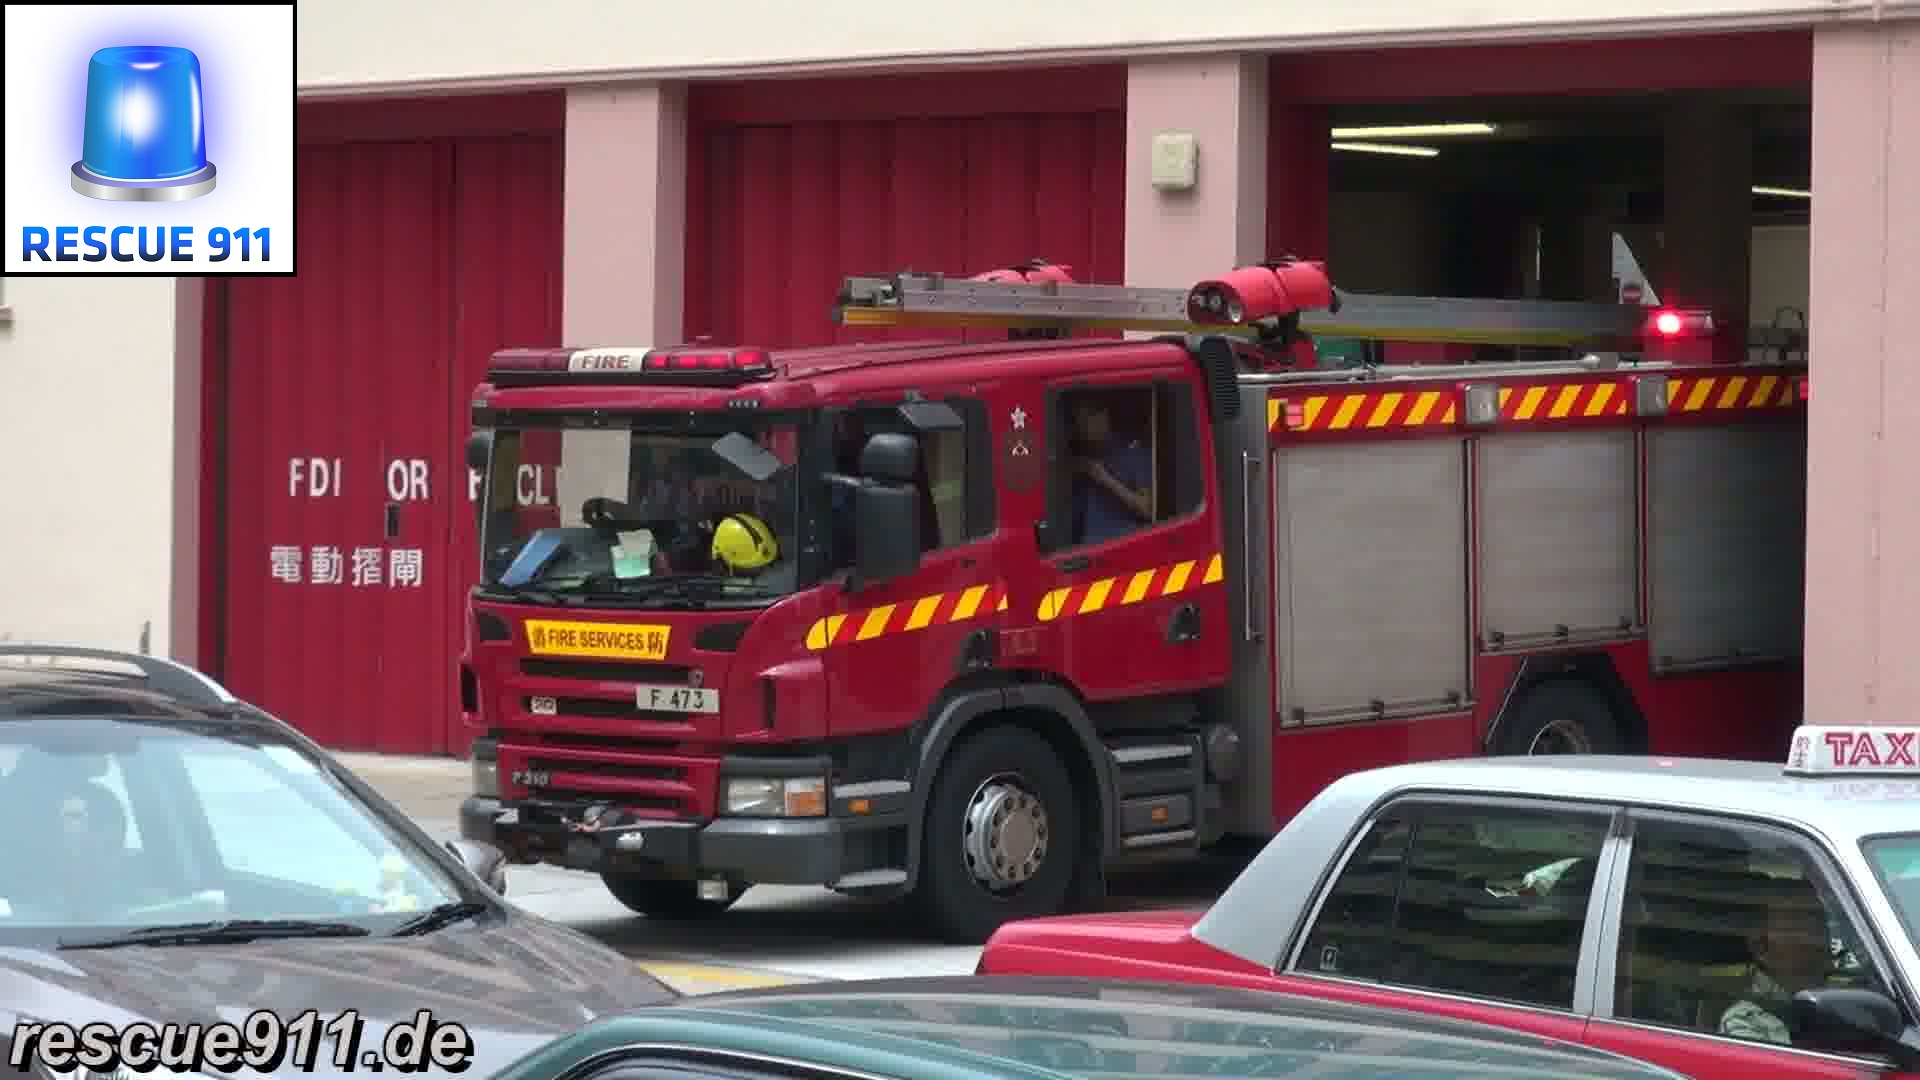 Major Pump HKFSD Mong Kok Fire Station (stream)